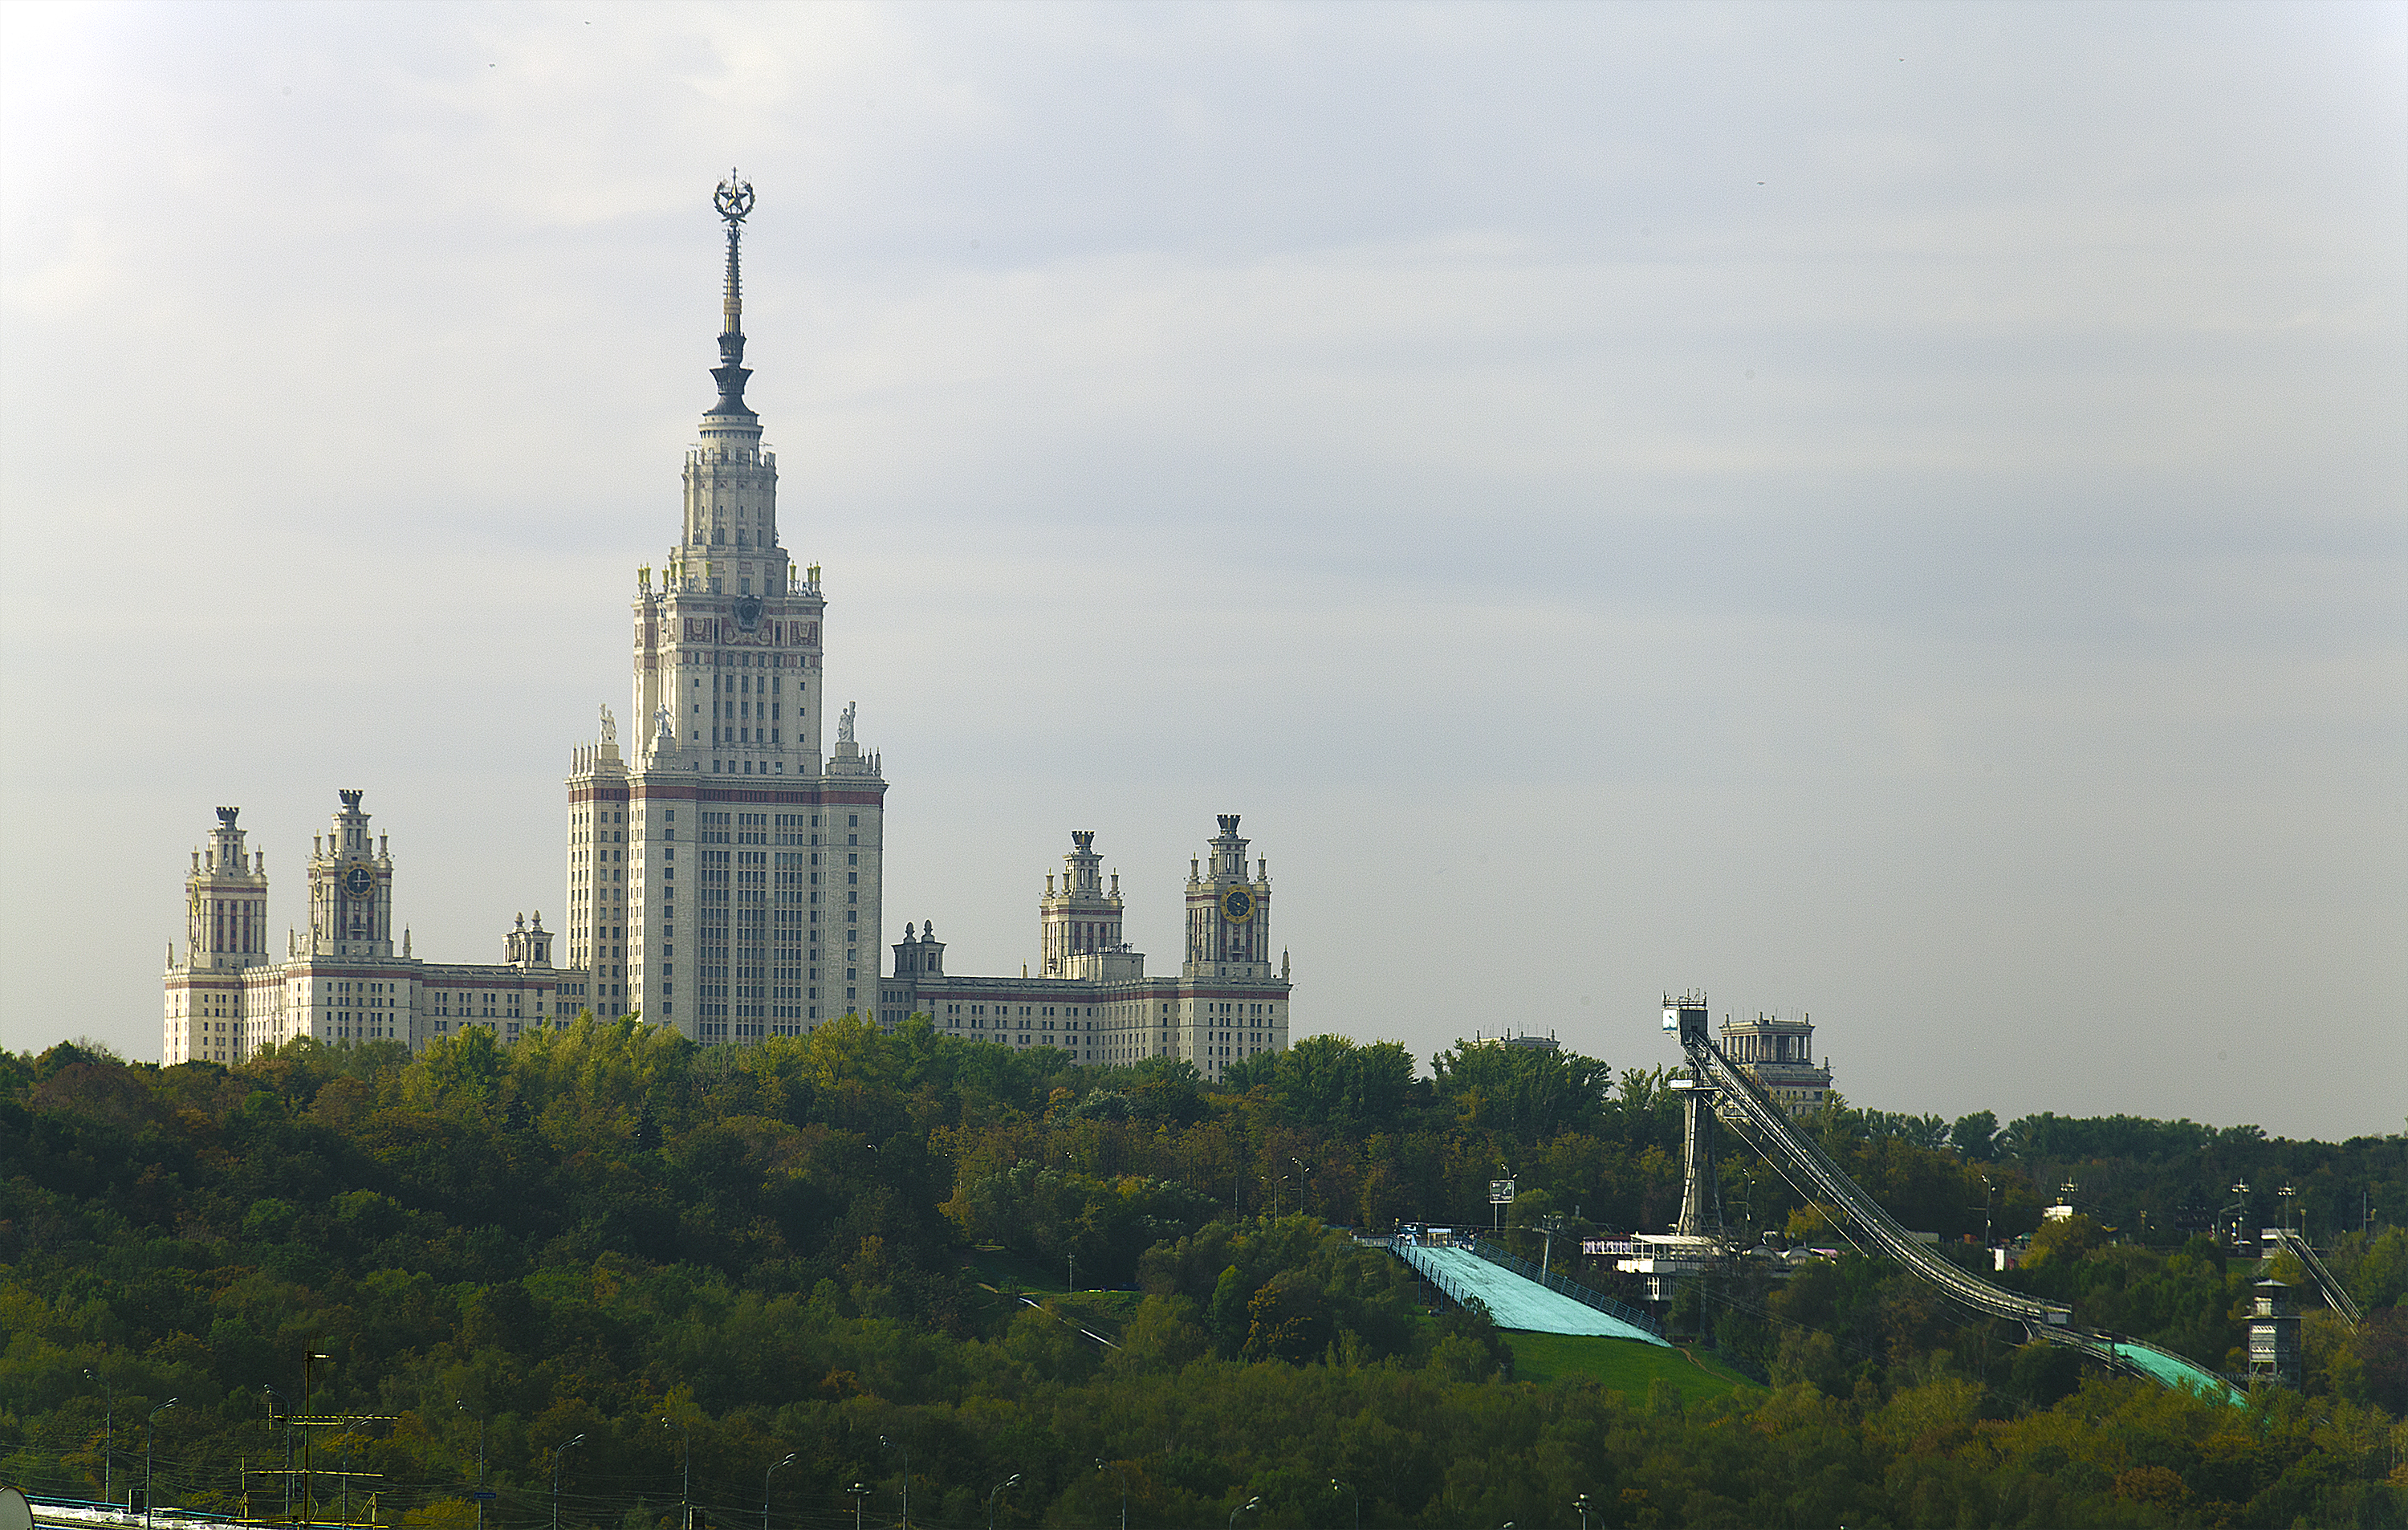 Moscow university and trampoline.jpg Русский: МГУ. Трамплин Date 22 September 2012, 12:15 Source Moscow university and trampoline Author Pavel Kazachkov